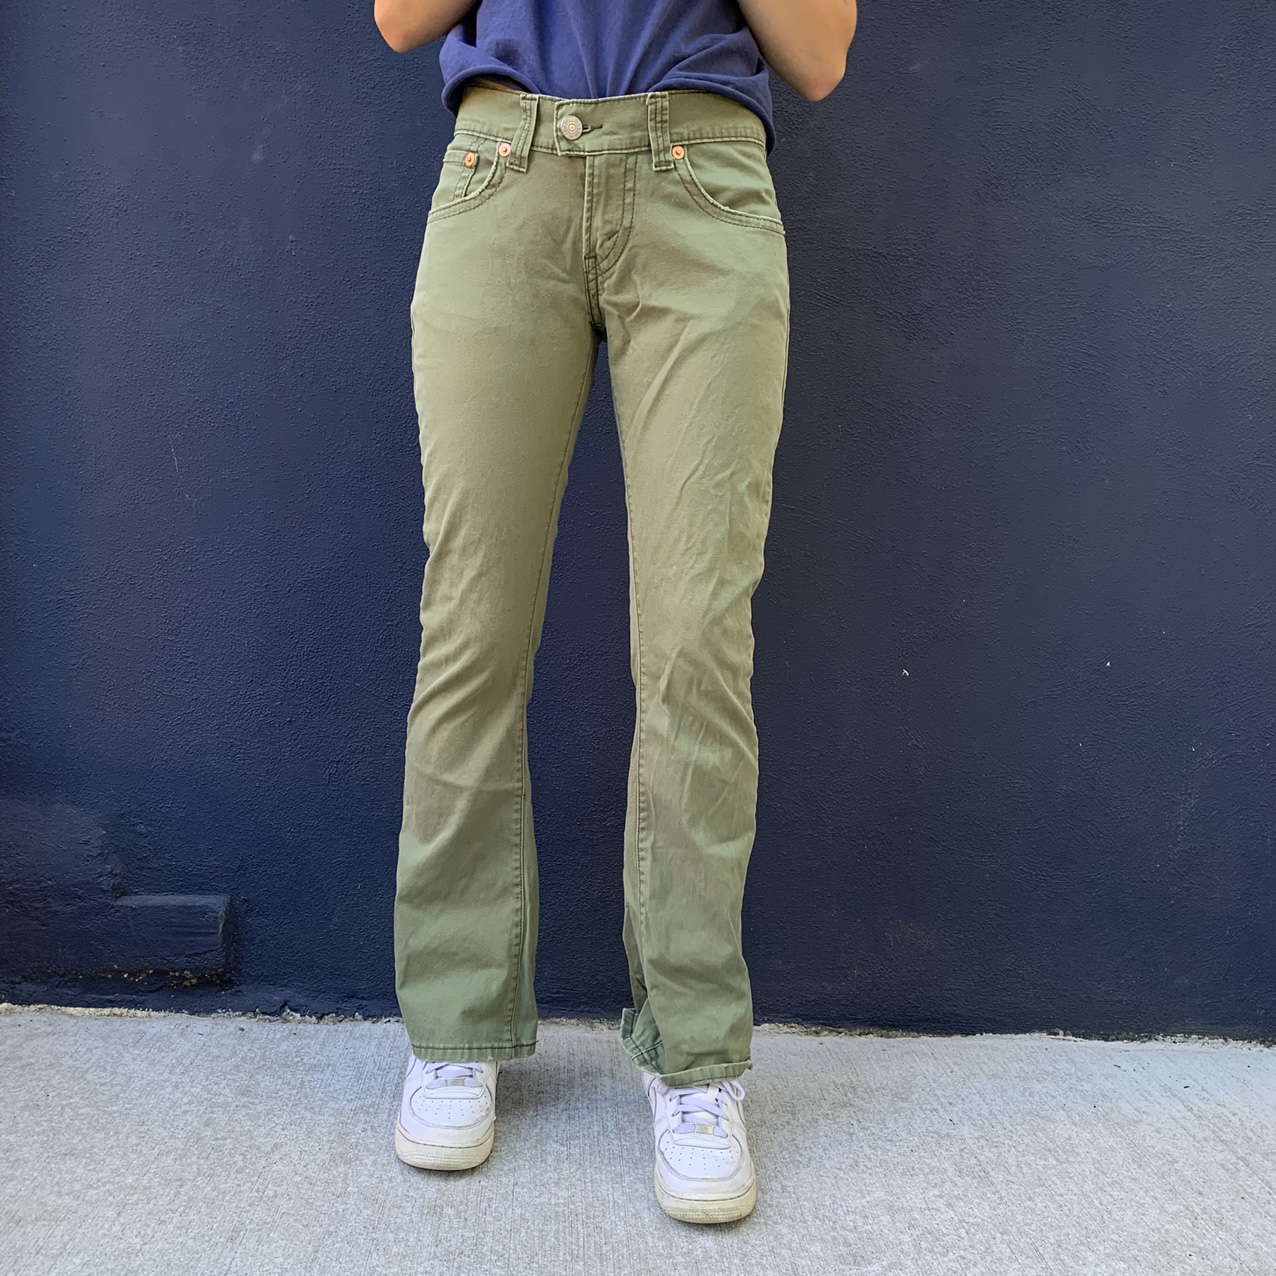 Product Image 1 - Super nice green Levi's low